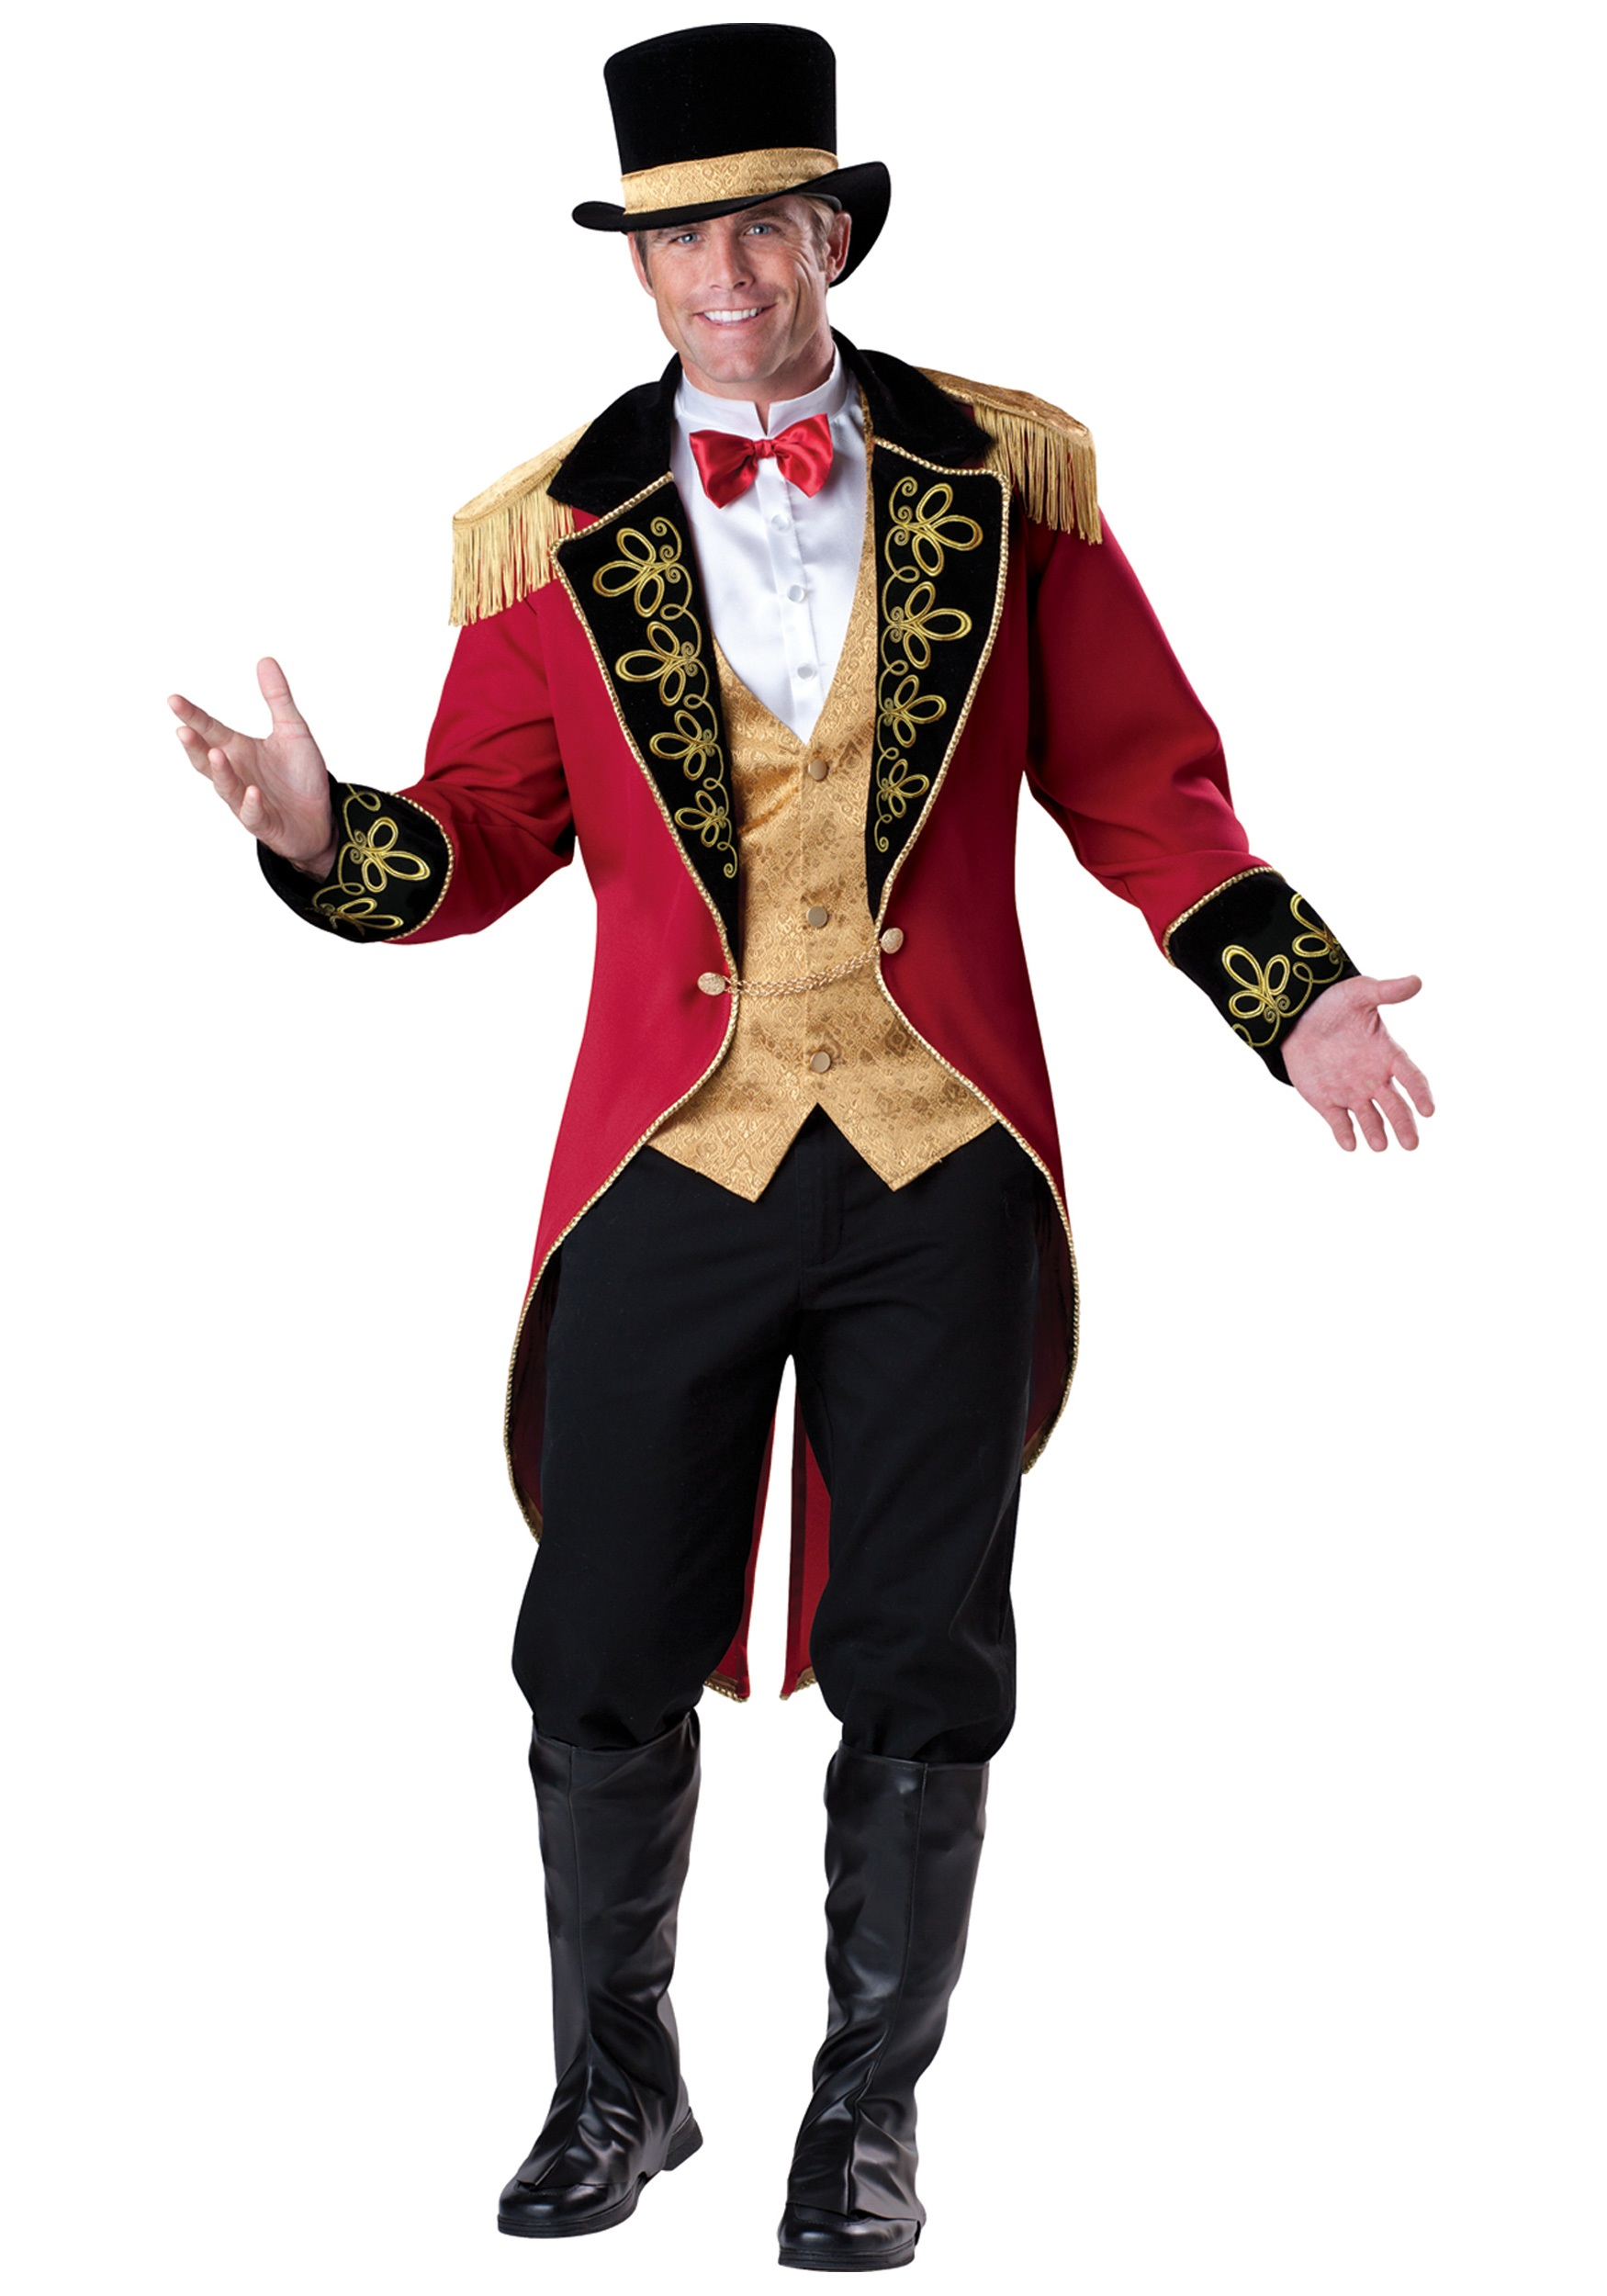 ADULT RINGMASTER COSTUME Coat Vest Dickey w/ attached bow tie Top hat Boot covers